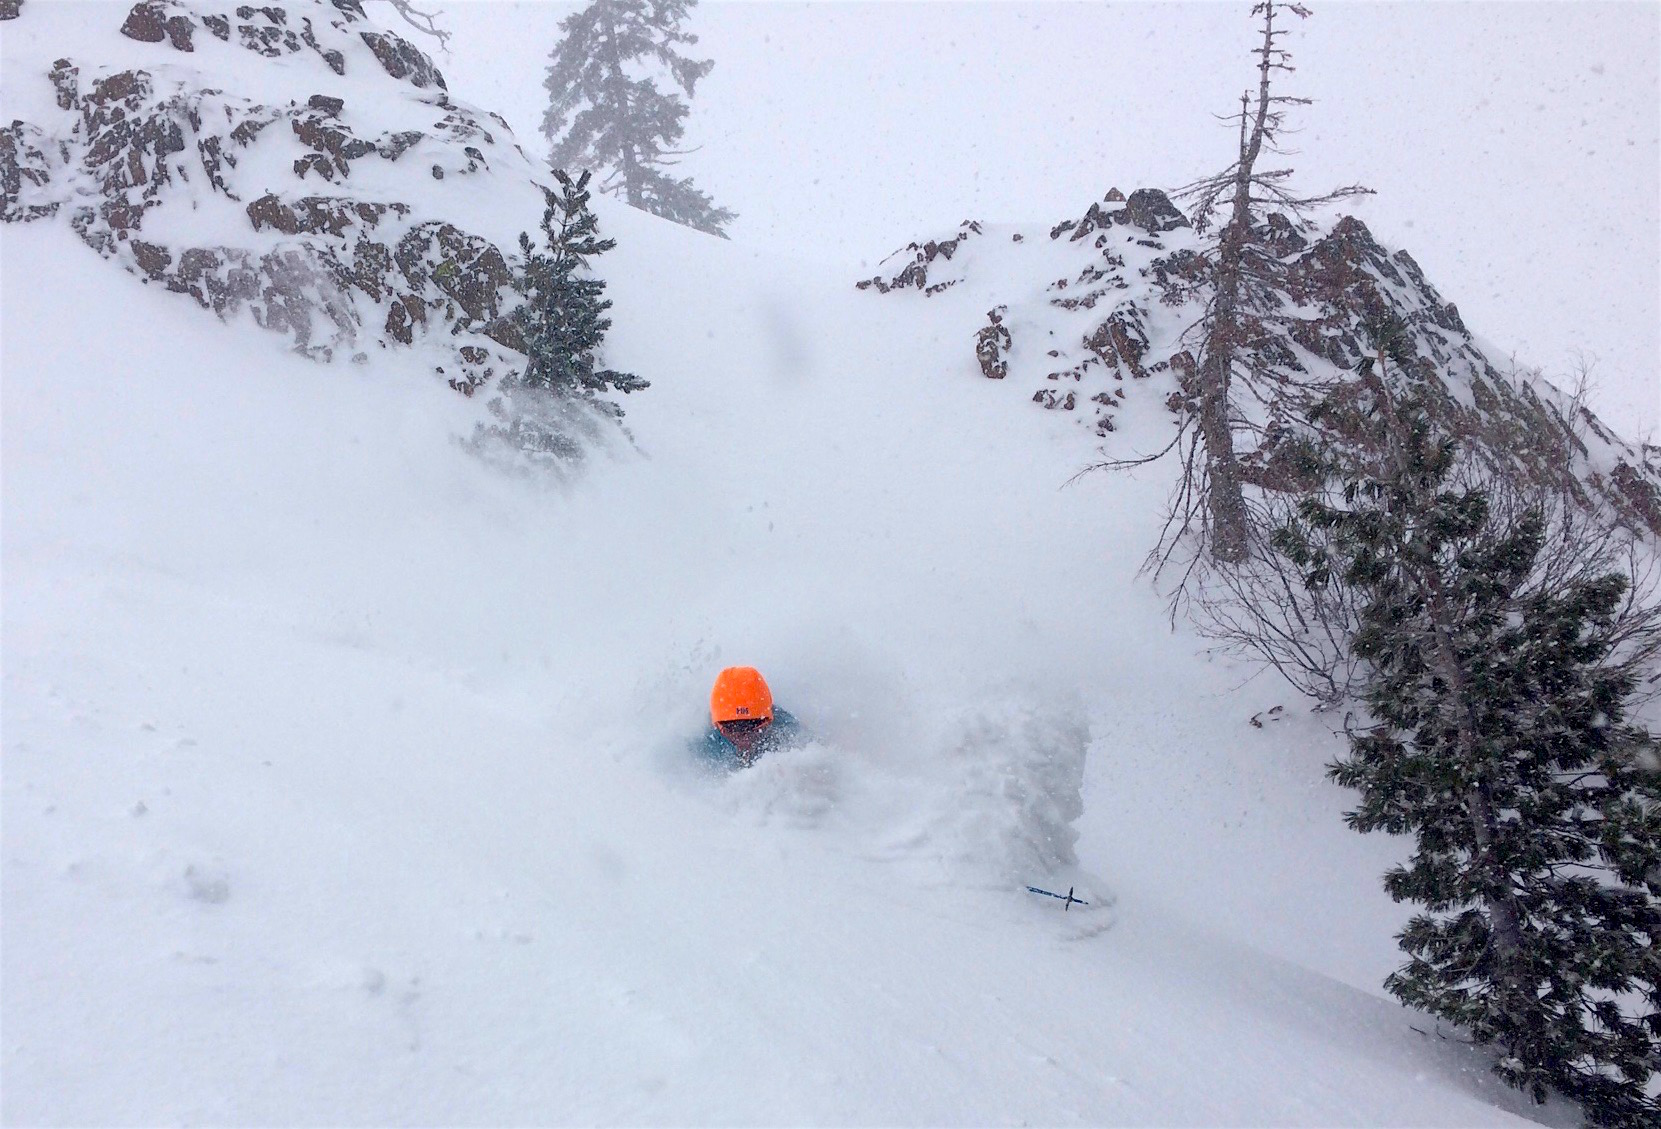 Miles in the deep today at Alpine. photo: alan ashbaugh